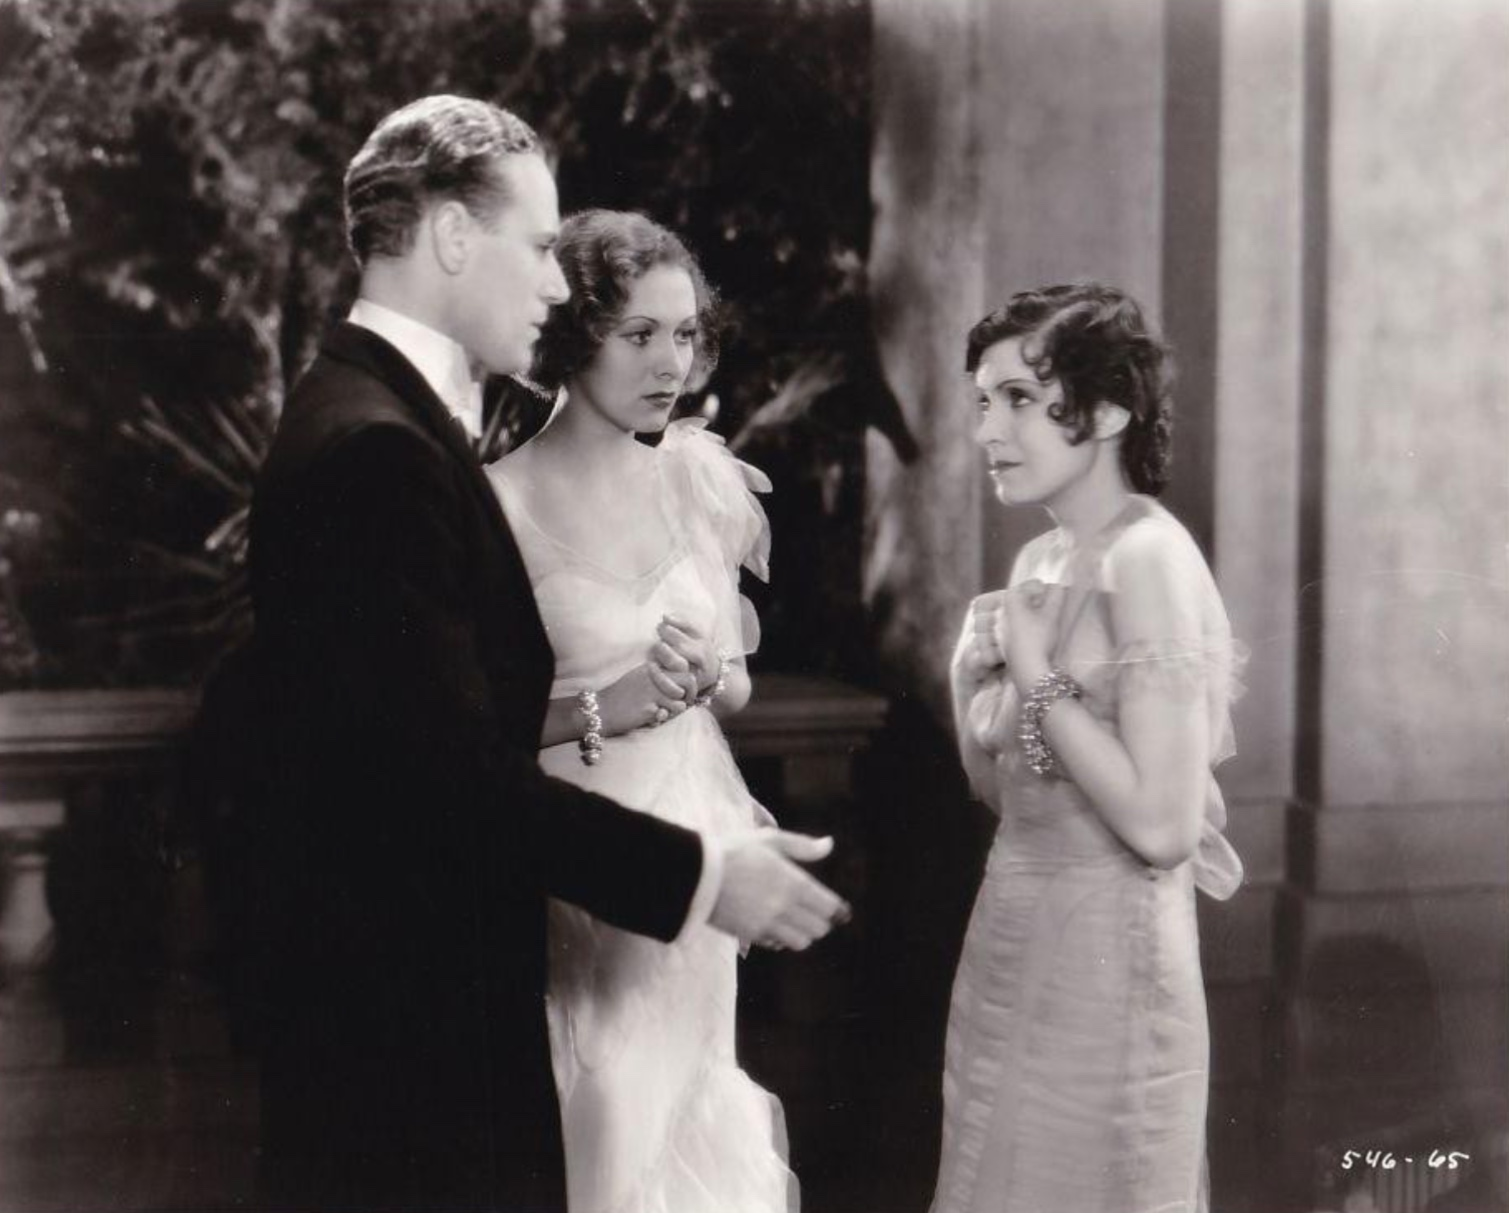 Leslie Howard, Conchita Montenegro, and Karen Morley in Never the Twain Shall Meet (1931)